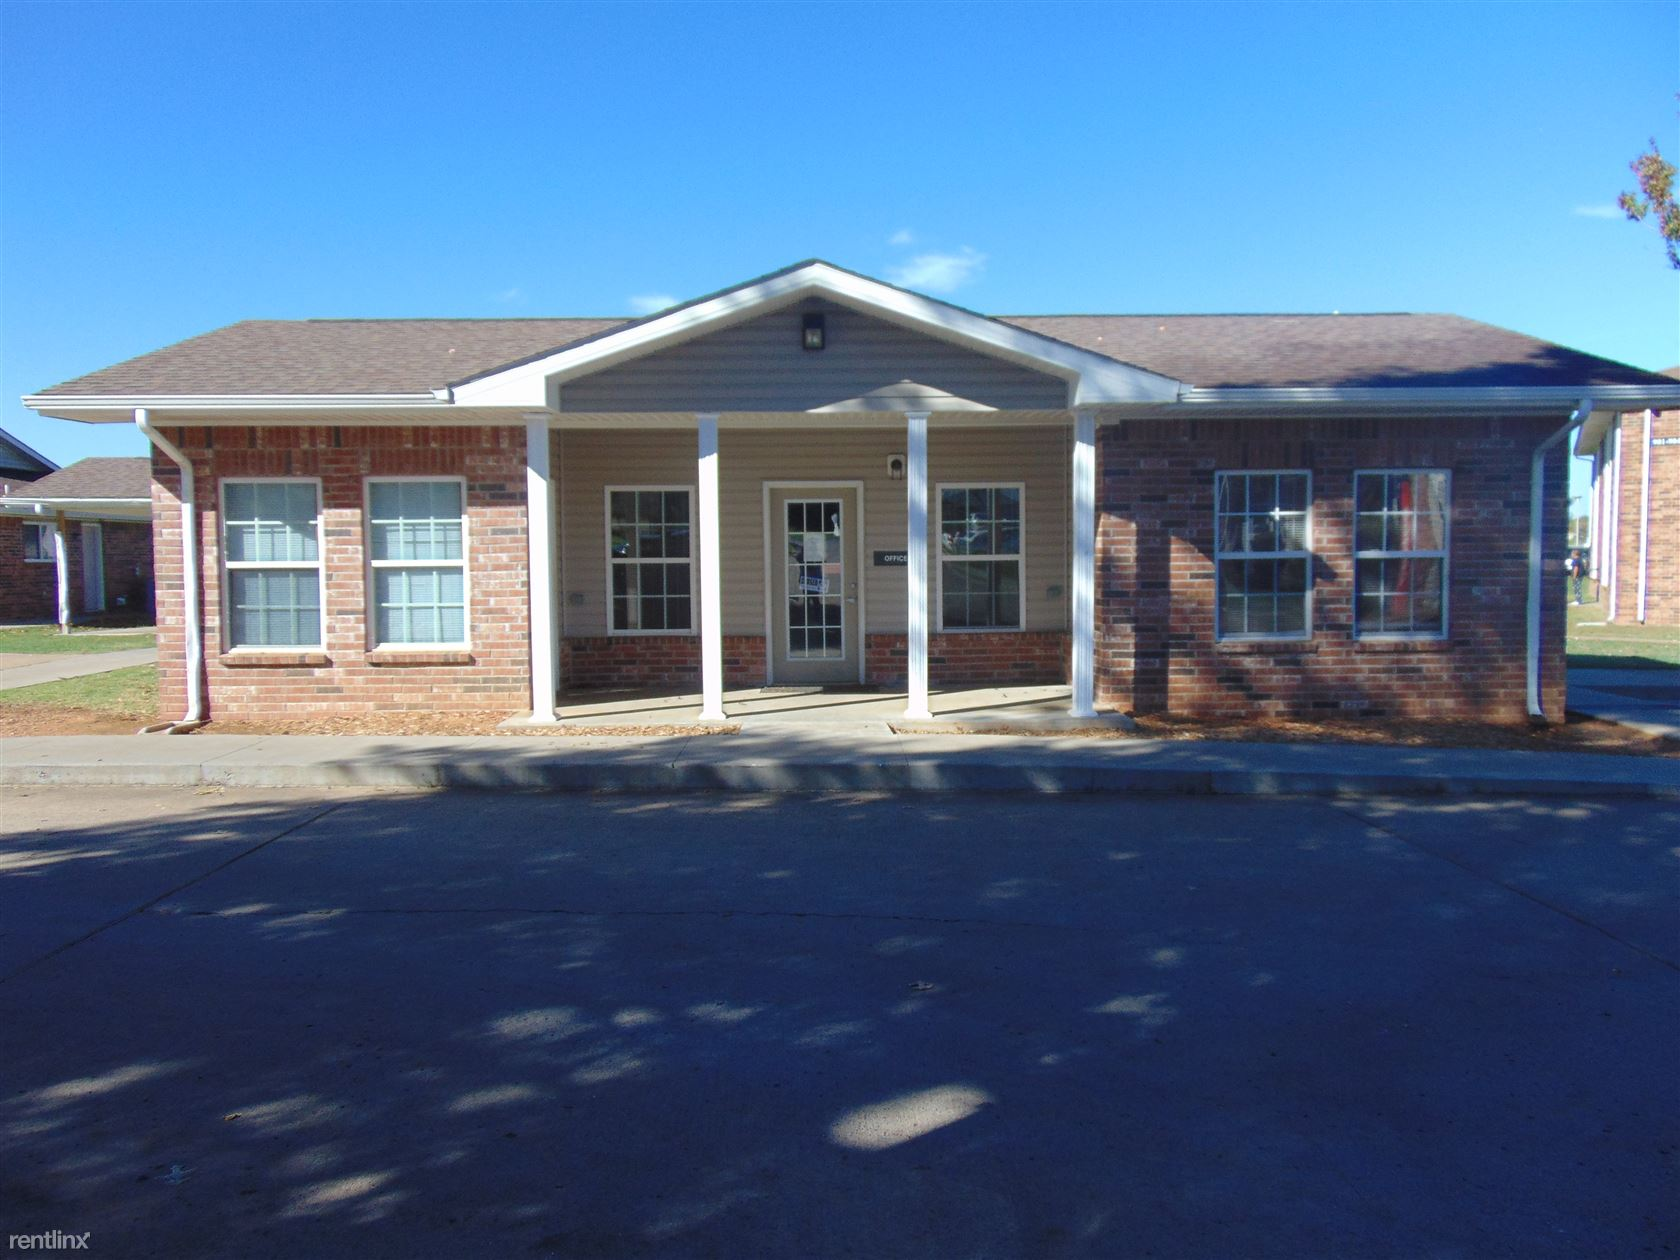 rent for locust avenue main apartmentsforrentfayettevillear fayetteville apartments bedroom south in ar one